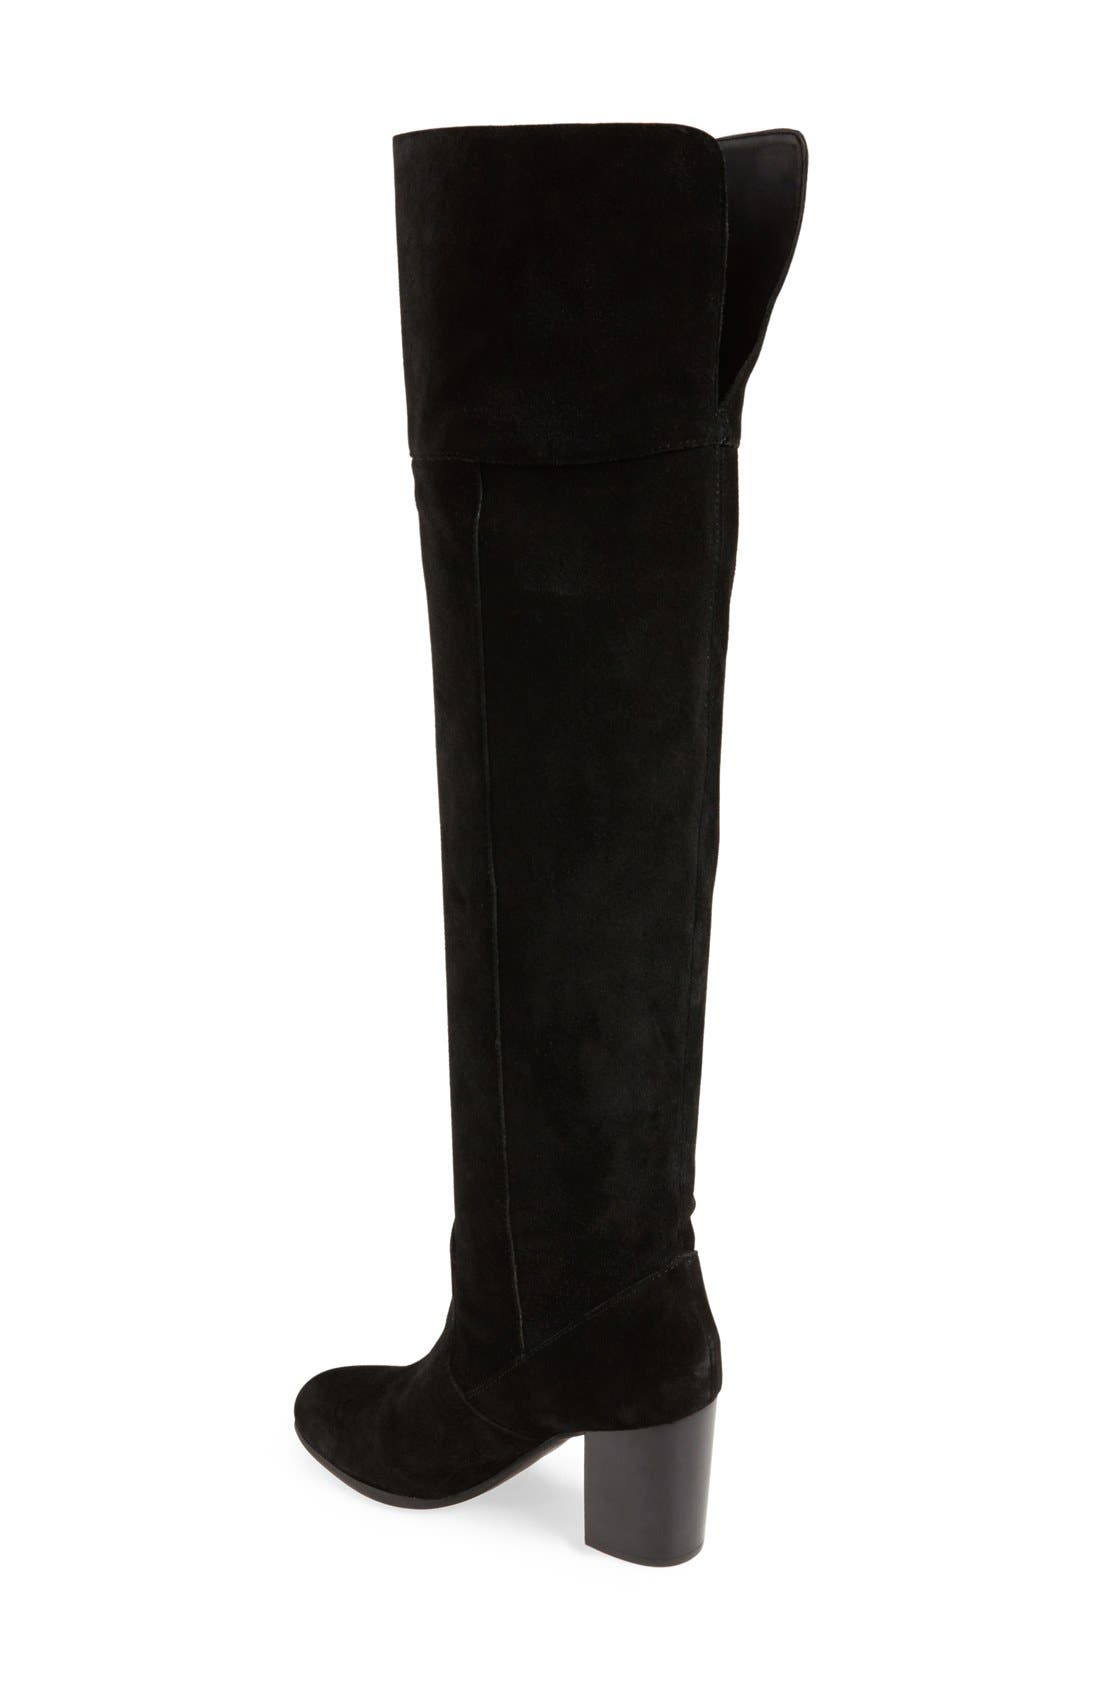 JessicaSimpson'Ebyy' Over the KneeBoot,                             Alternate thumbnail 4, color,                             001